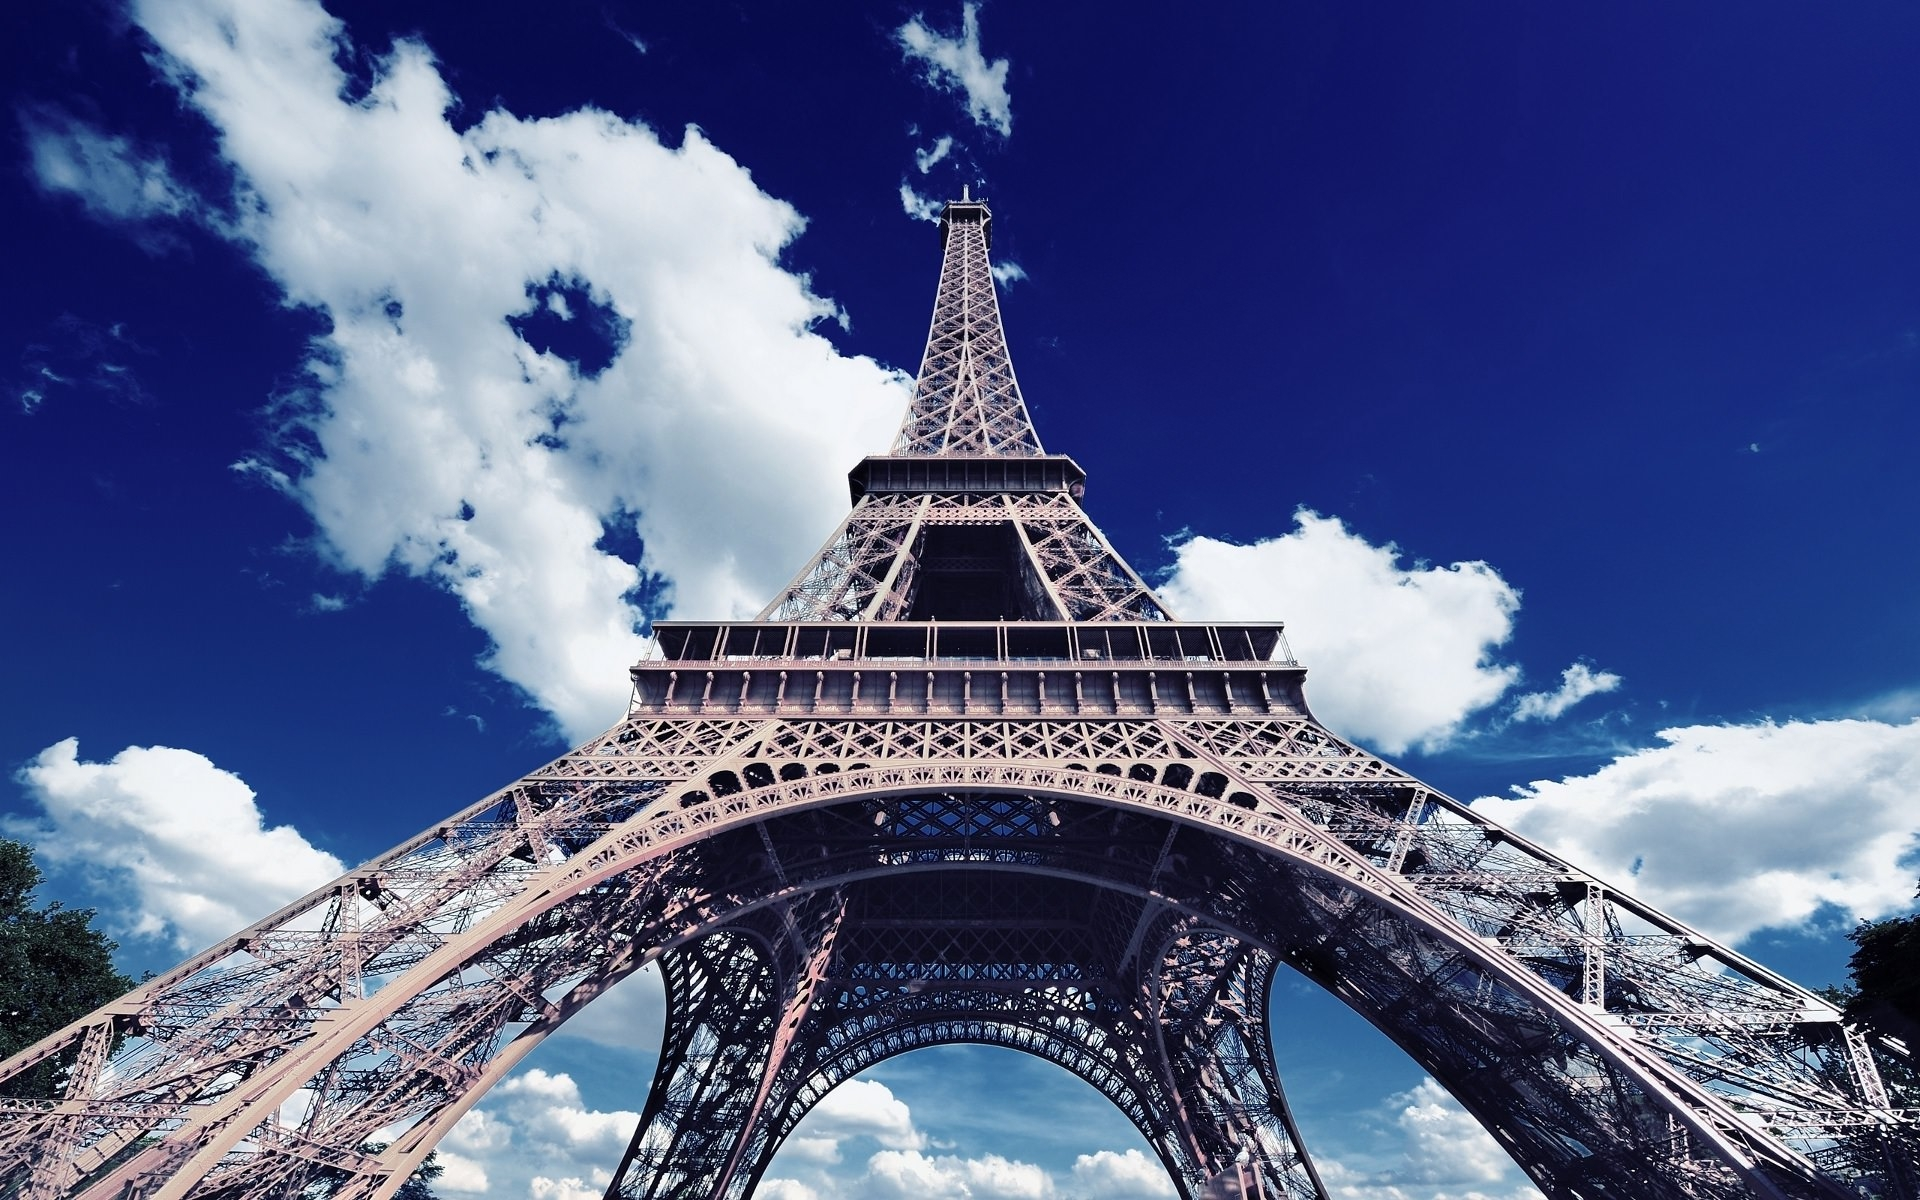 Eiffel Tower HD Wallpaper for Free Download